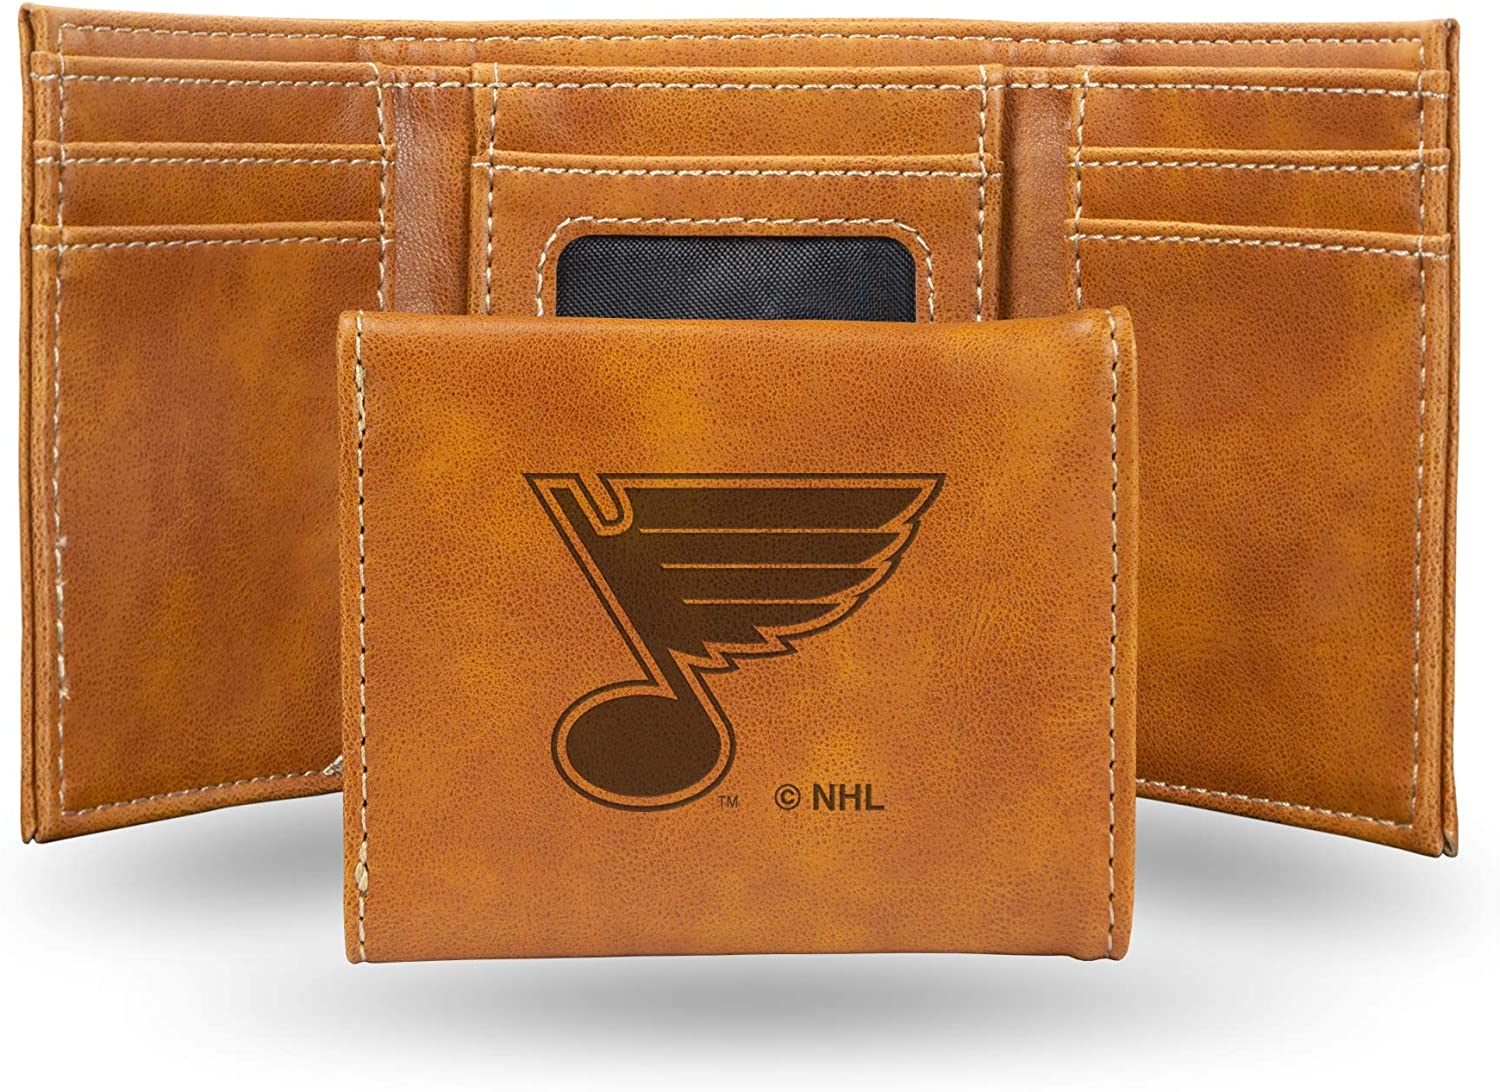 NHL Rico Industries Laser Engraved Trifold Wallet, St. Louis Blues